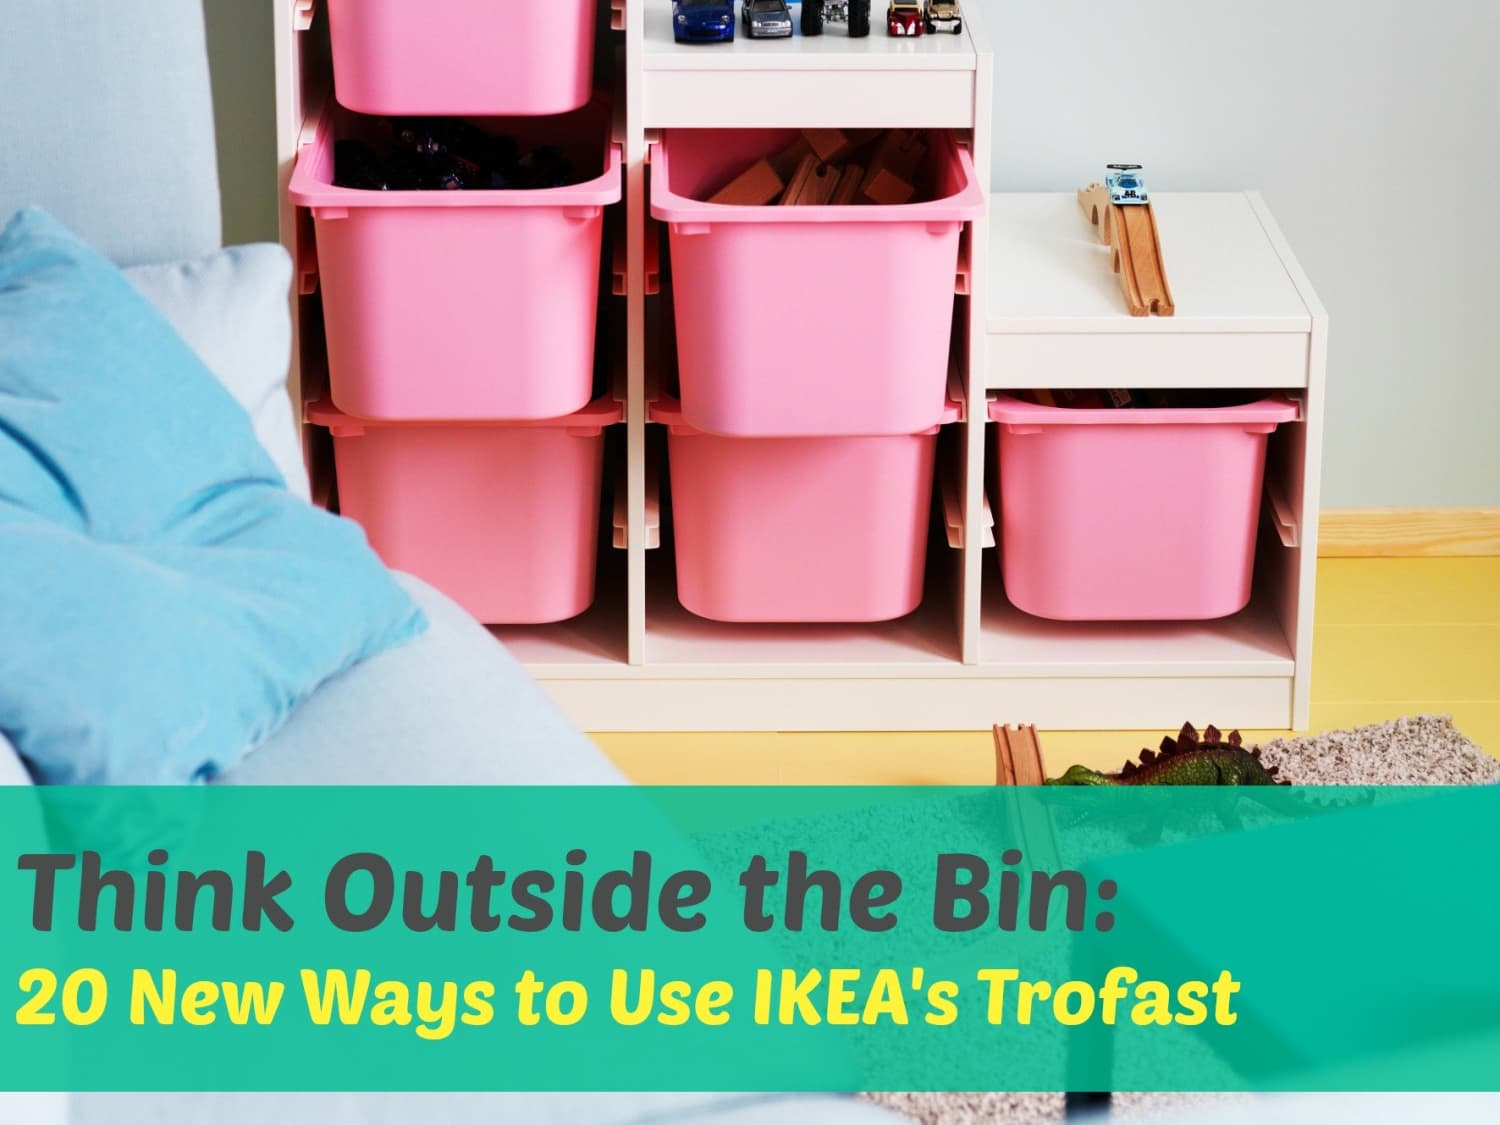 20 Ways To Hack Tweak Repurpose Reimagine Ikeas Trofast